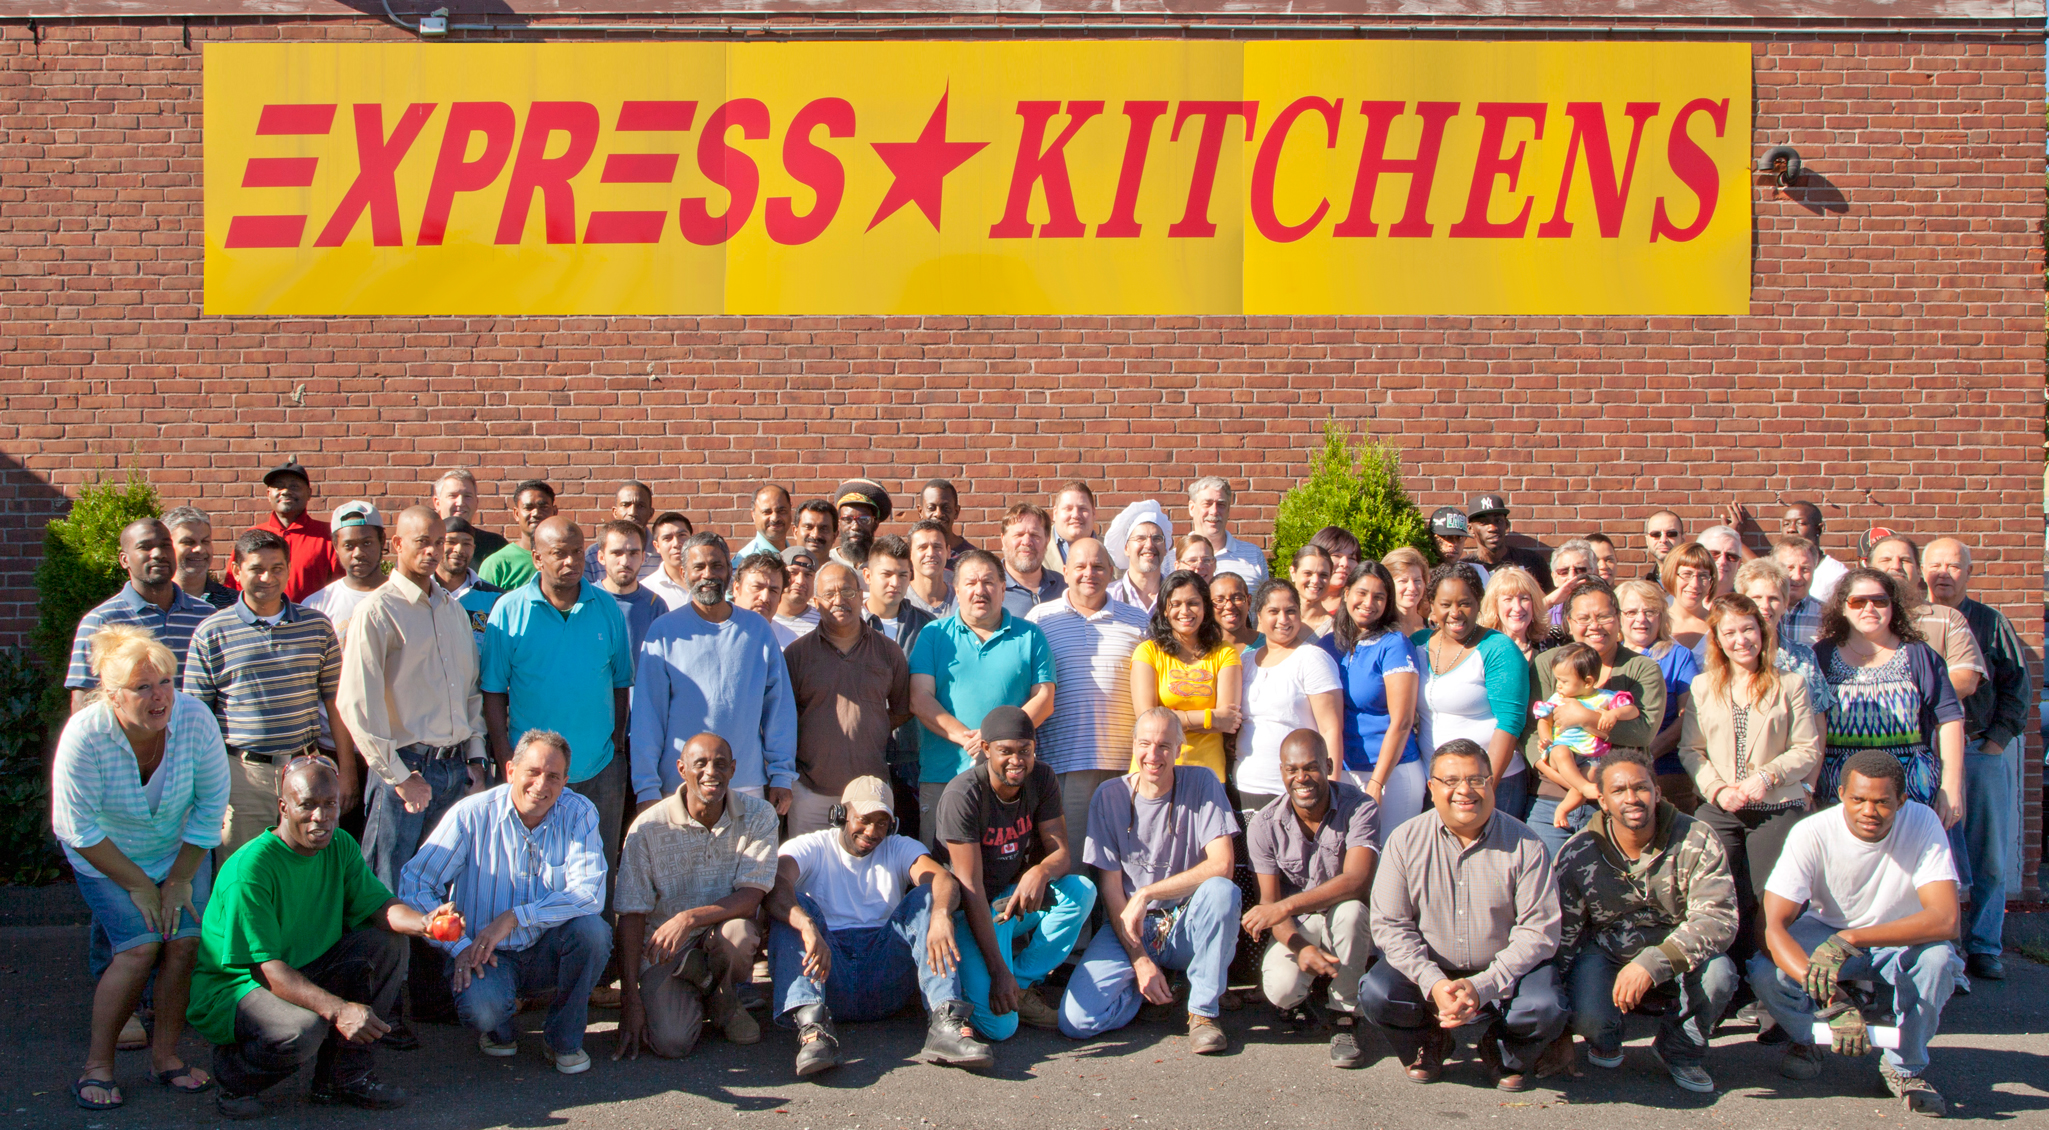 Bridgeport Mayor Finch Welcomes Express Kitchens